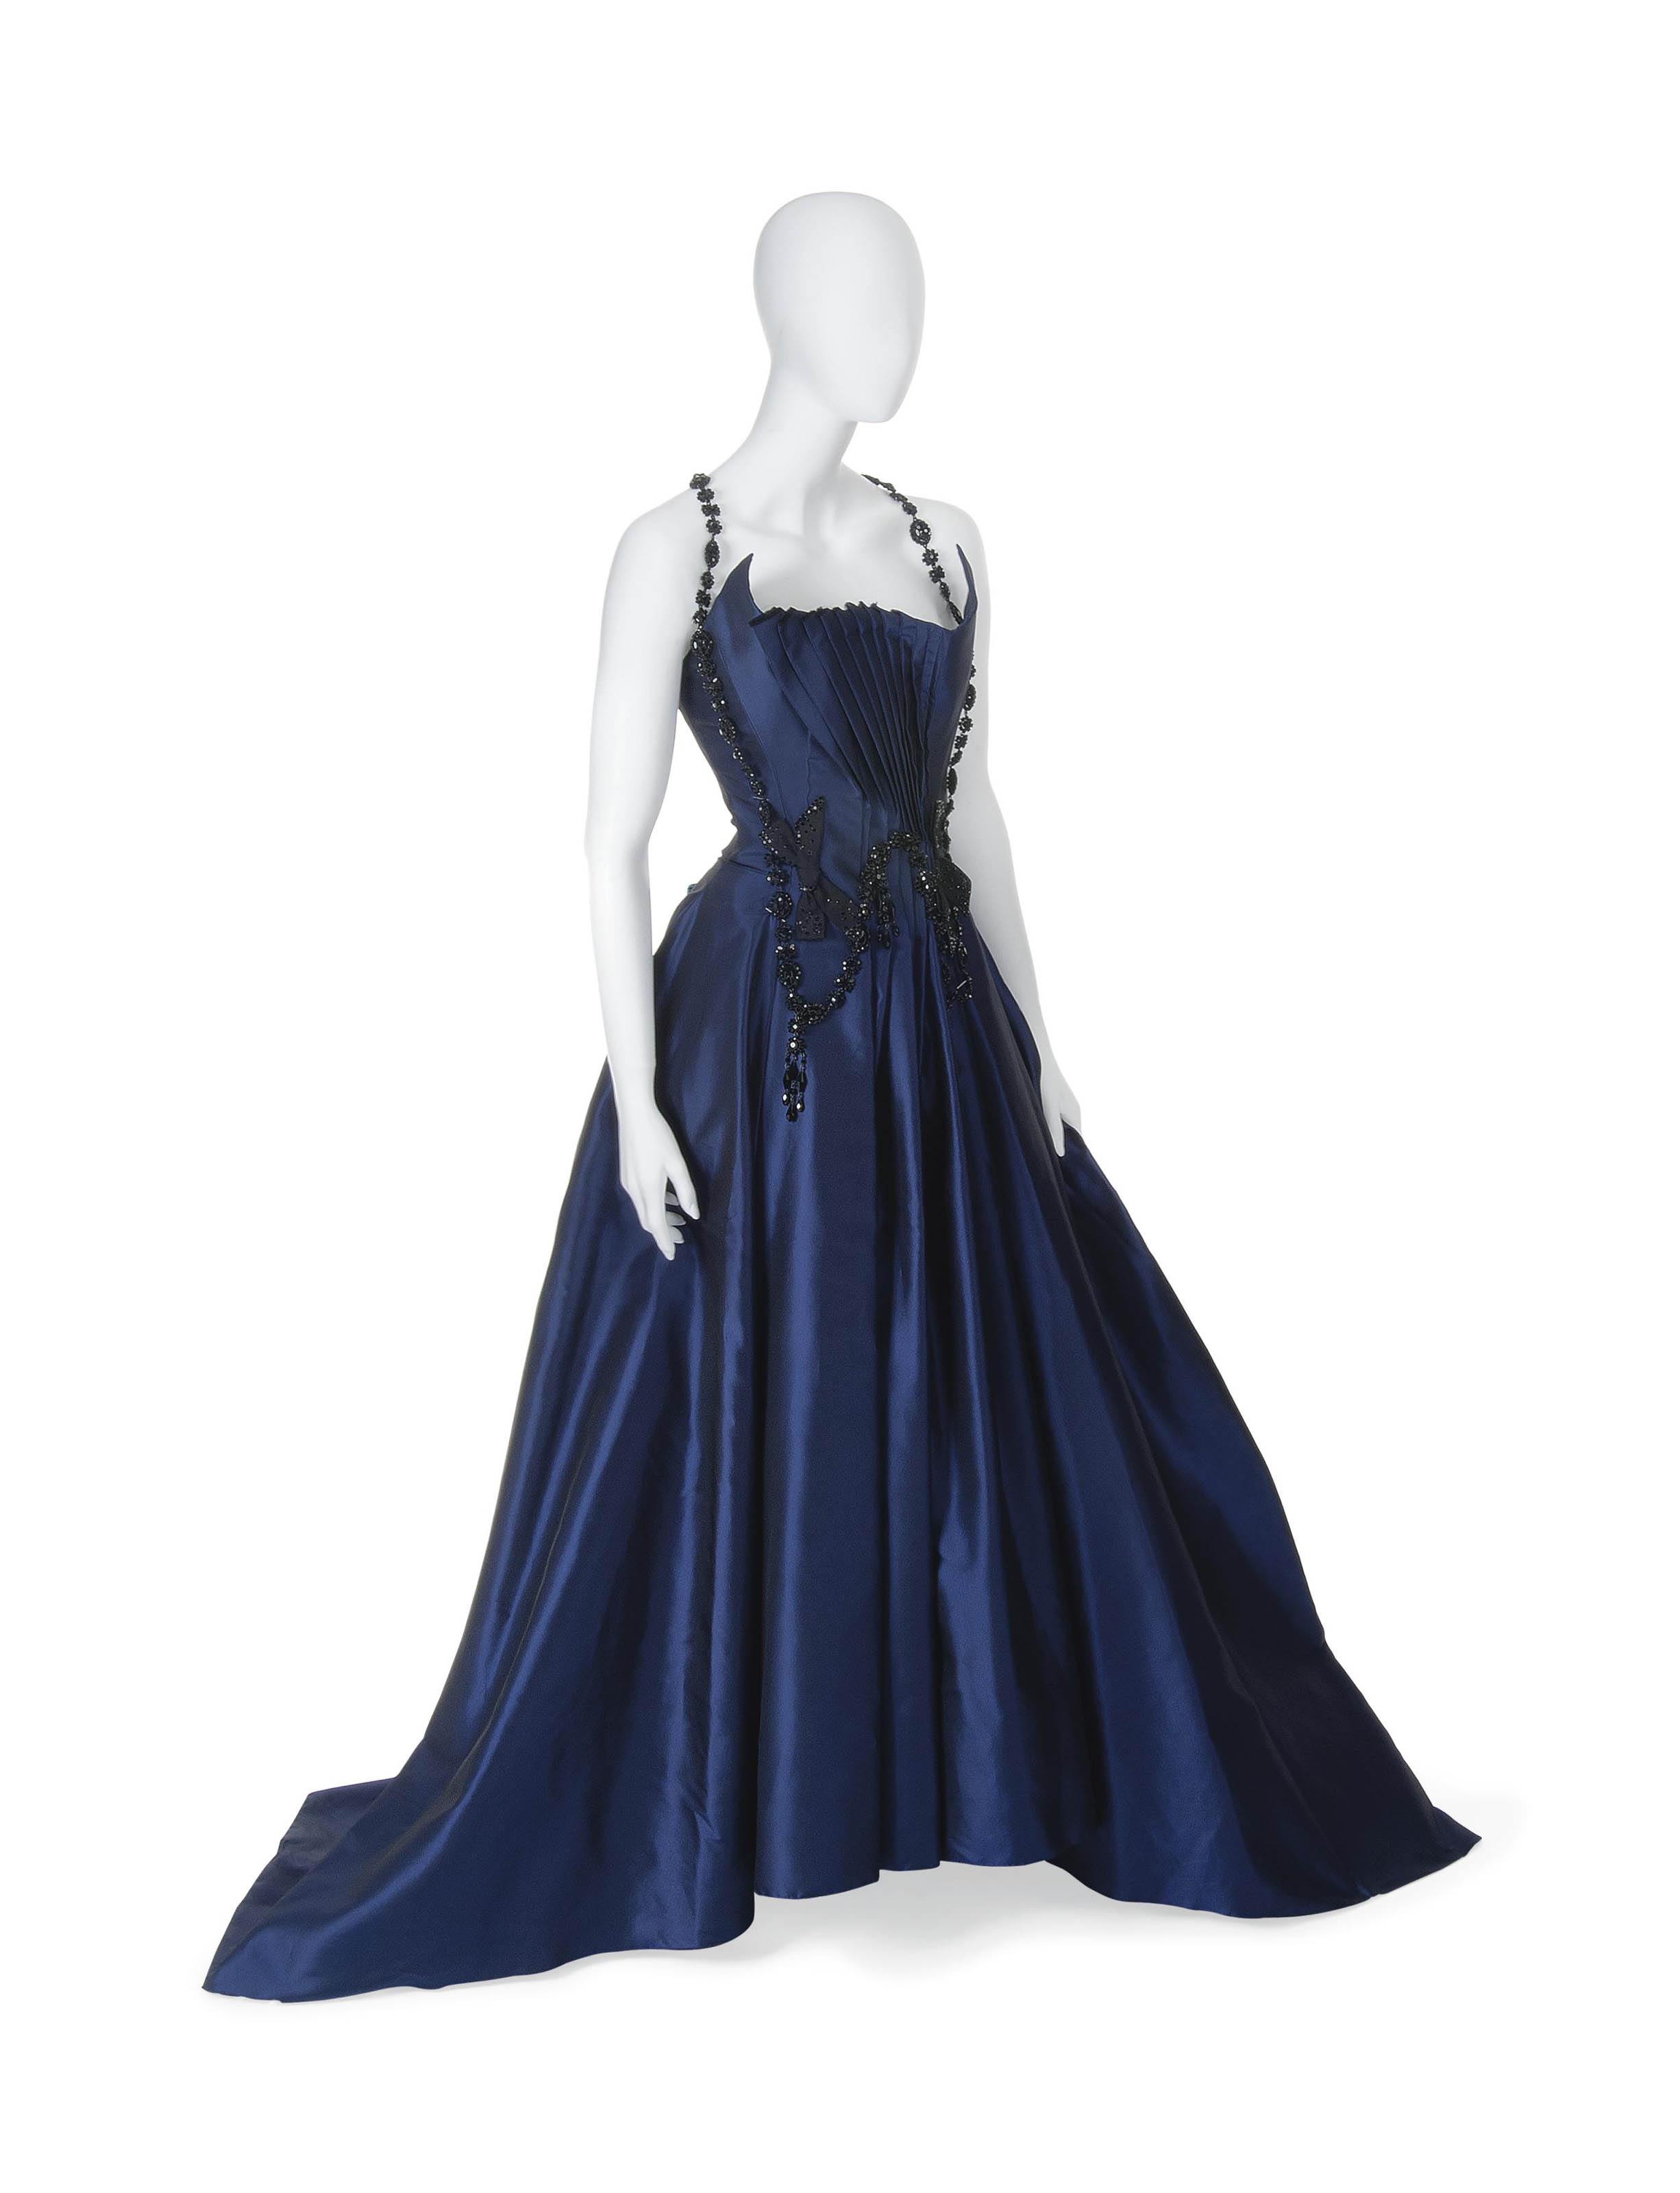 A MAGNIFICENT BALL GOWN OF MIDNIGHT BLUE SATIN | CHRISTIAN LACROIX ...